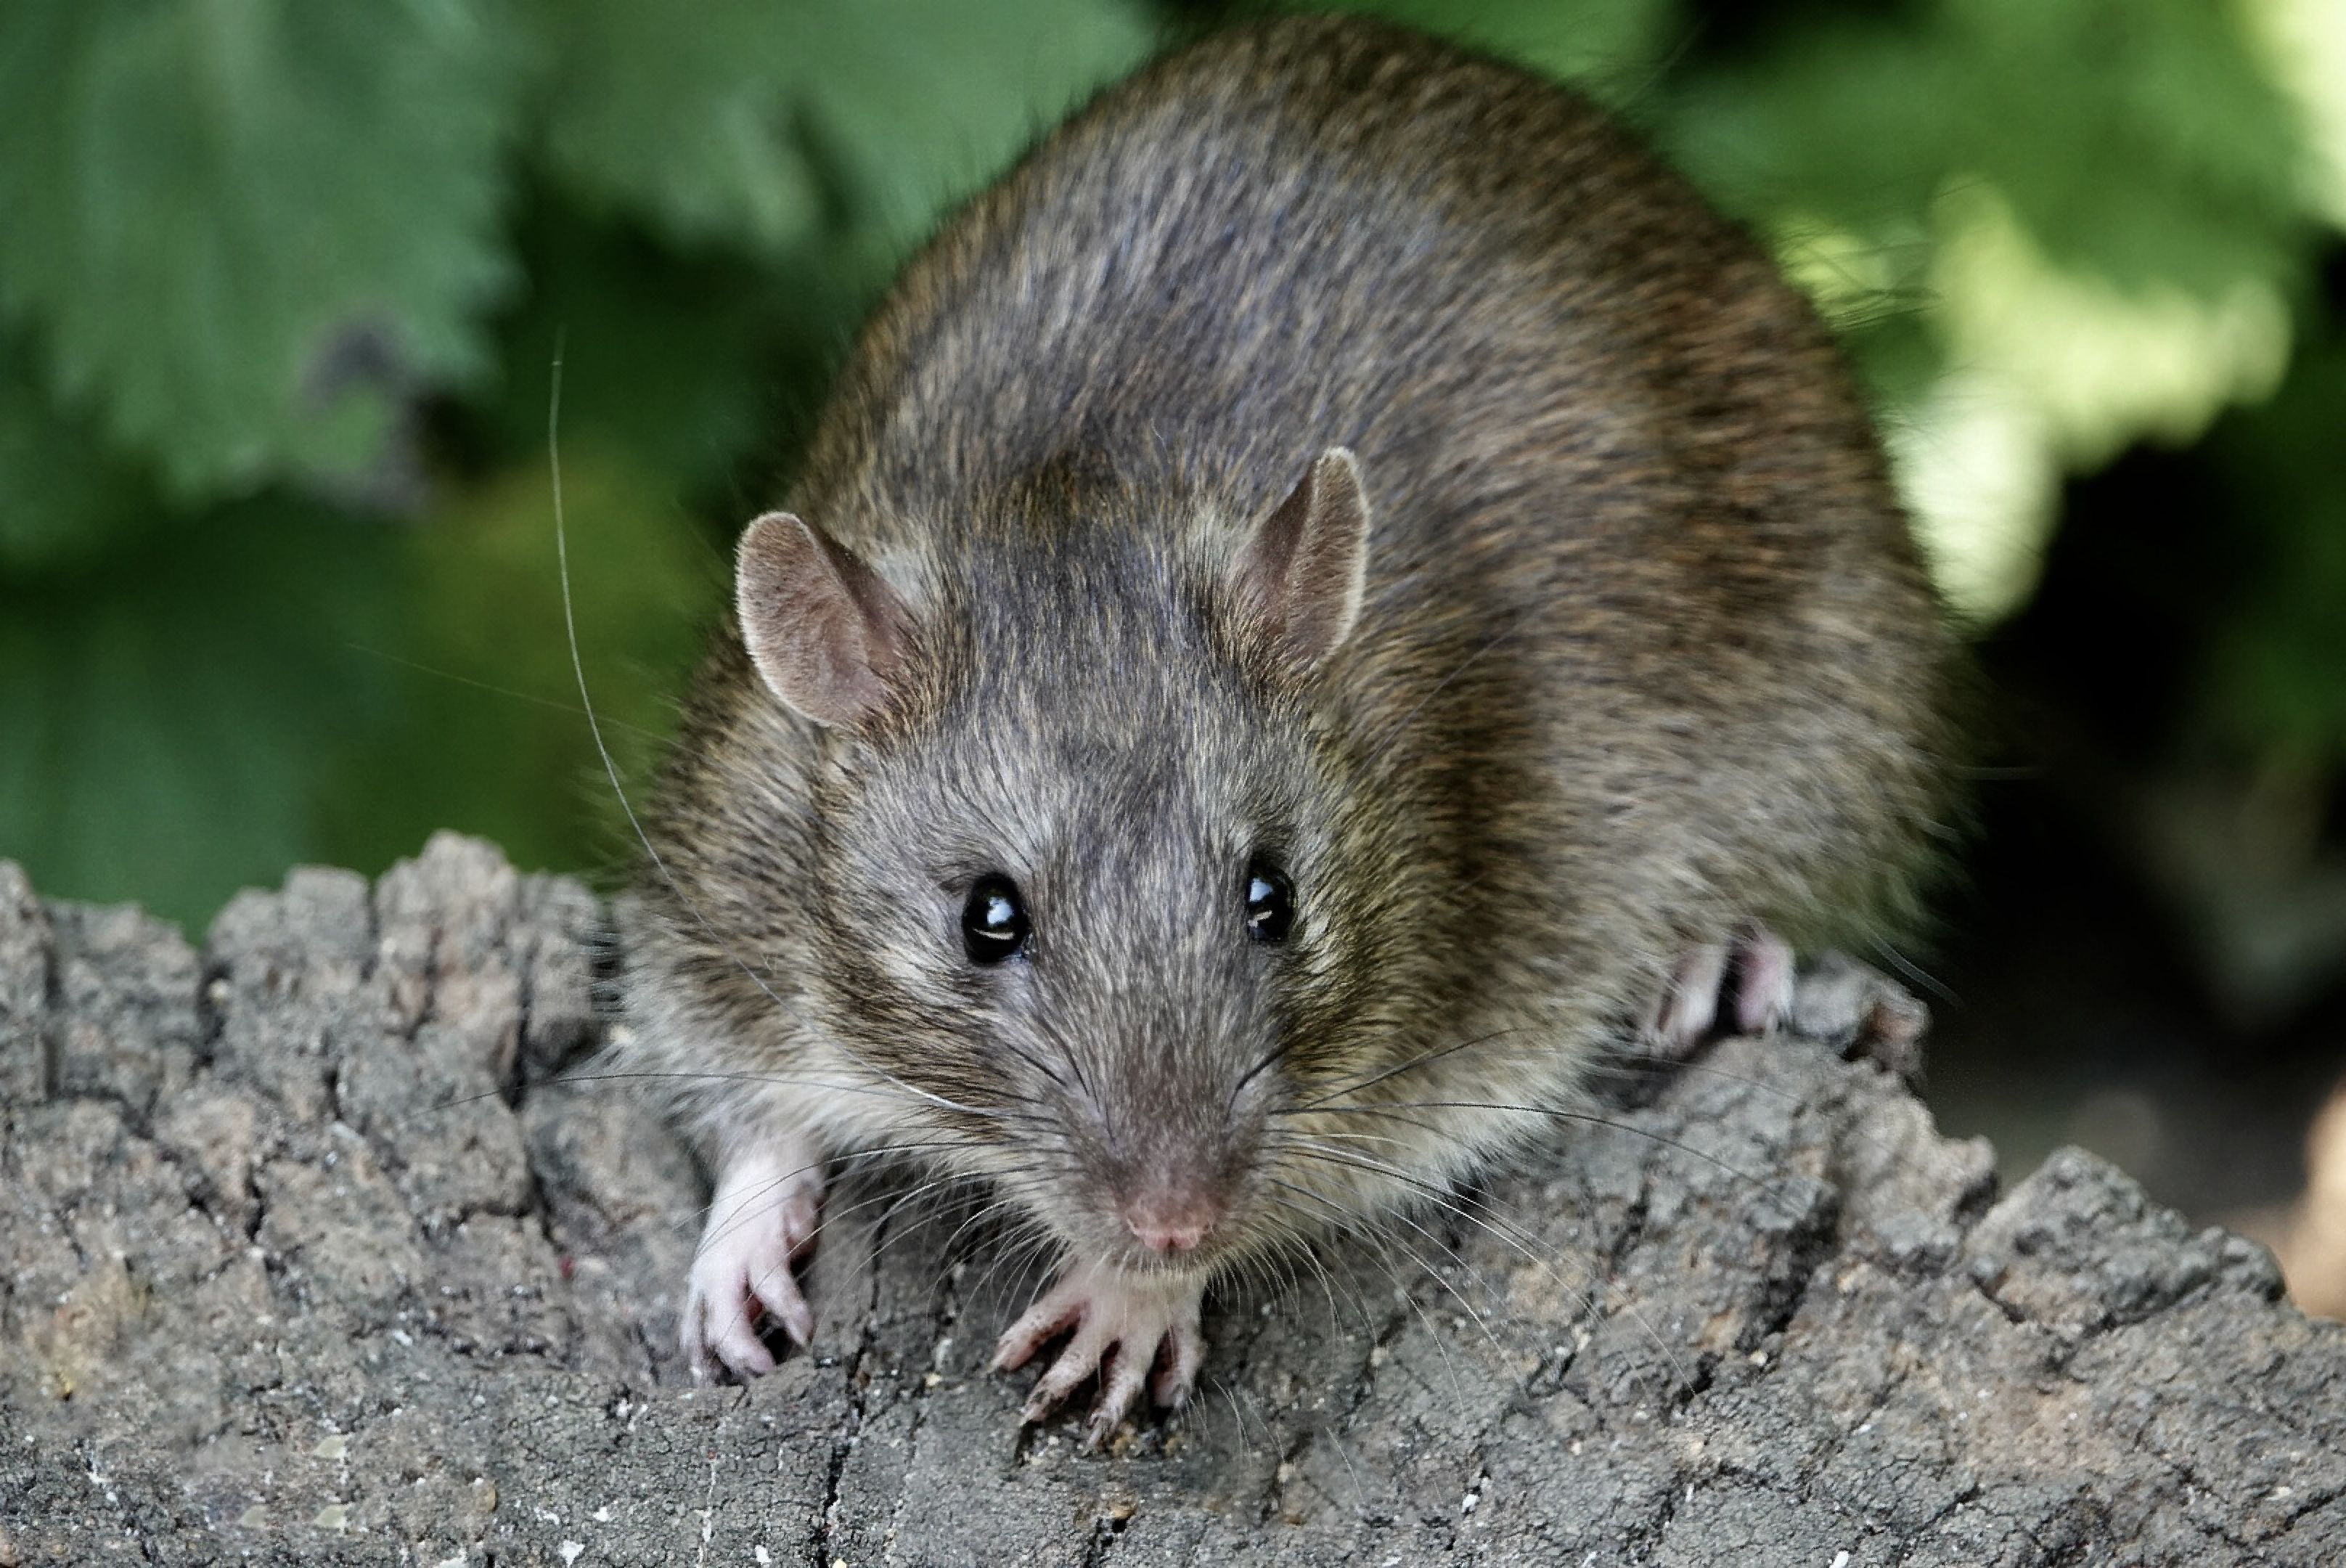 How To Get Rid Of Rats In The Home — Expert Tips